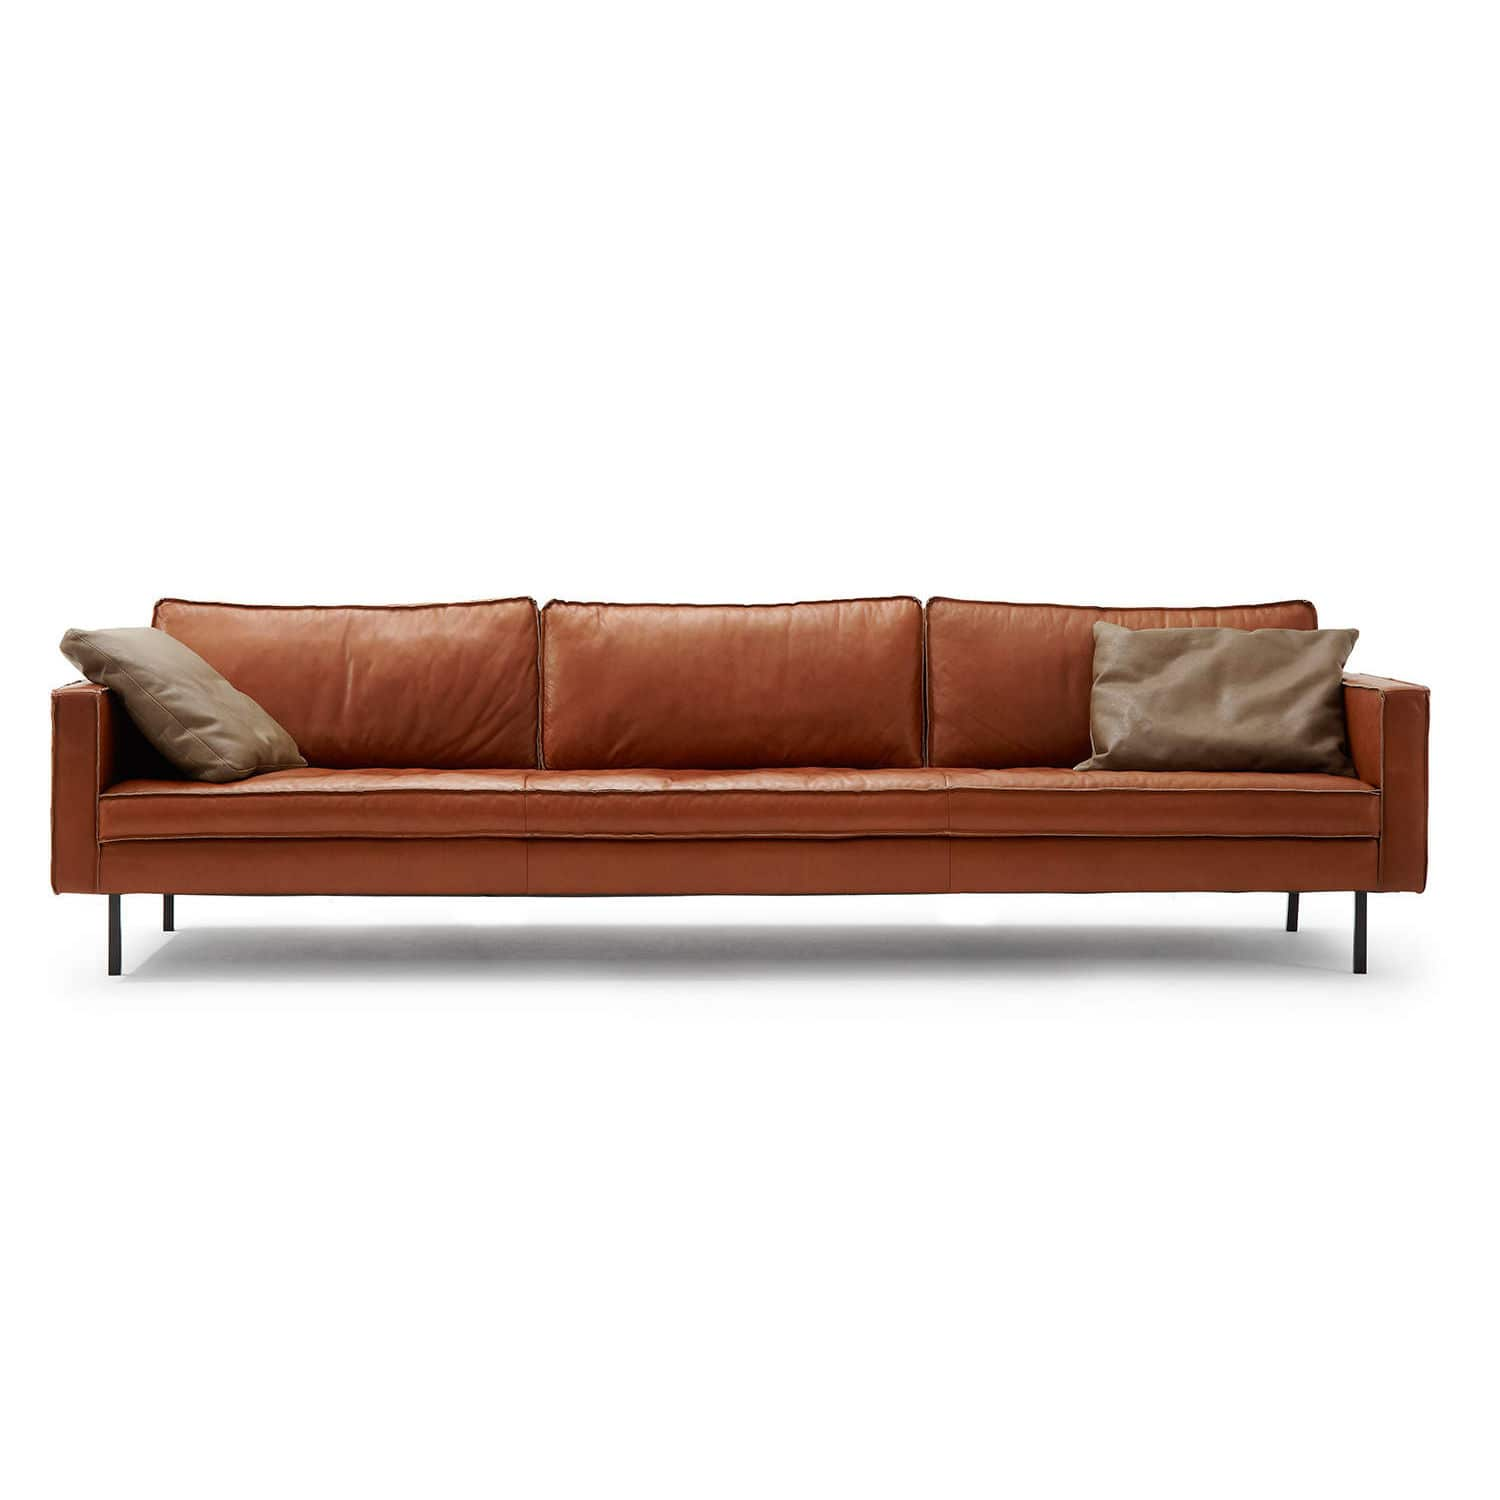 Modular Sofa Contemporary Leather 3 Seater Buster